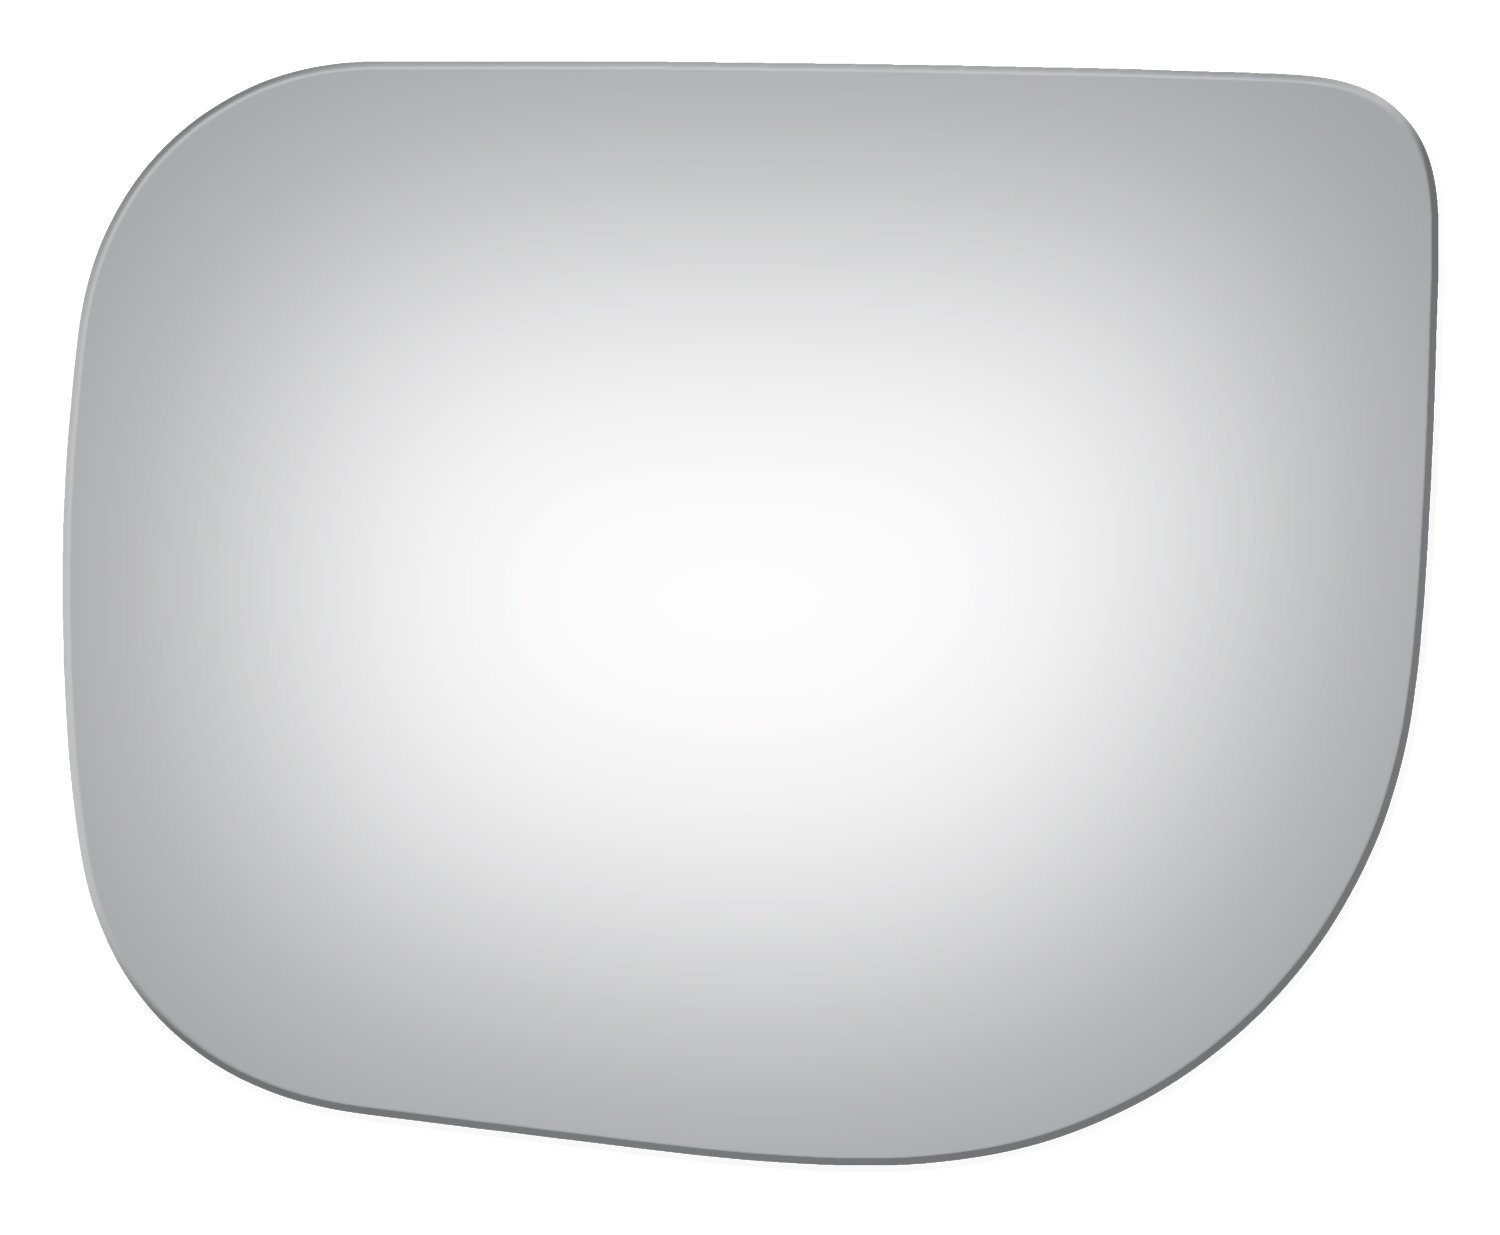 Titan 2009, 2010, 2011, 2012, 2013, 2014, 2015 Burco 4356 Flat Driver Side Replacement Mirror Glass for Nissan Armada